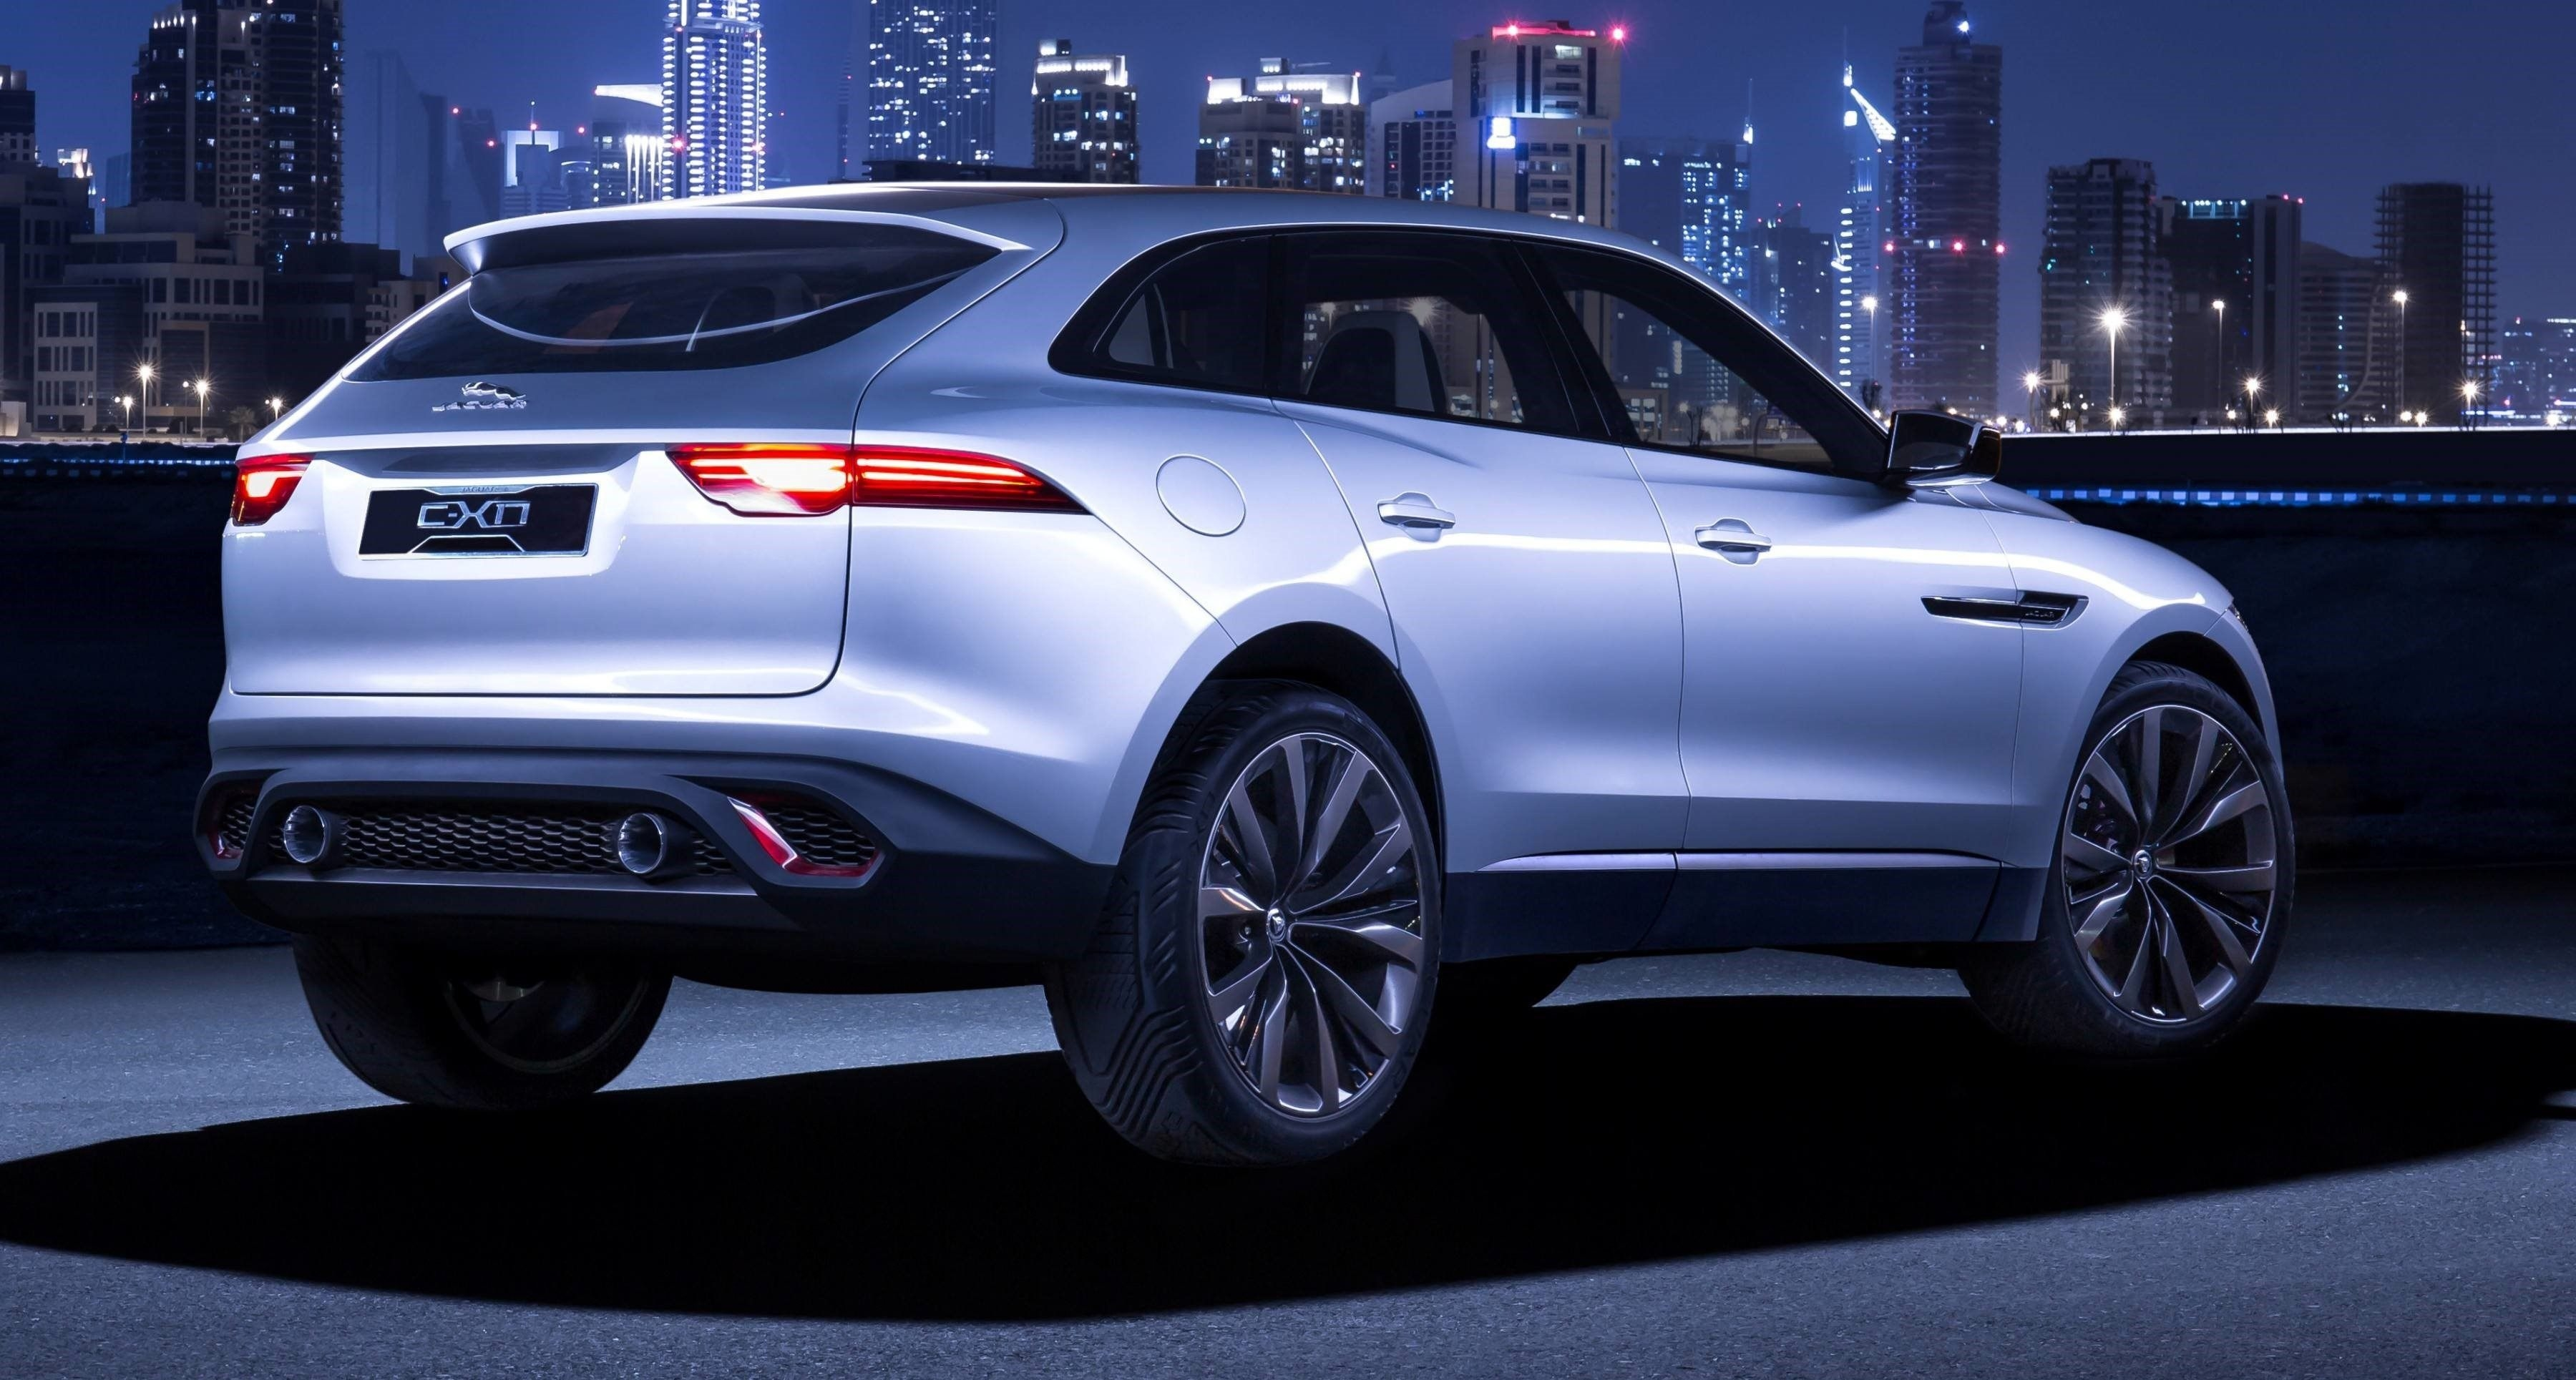 73 All New 2020 Jaguar Xq Crossover Engine